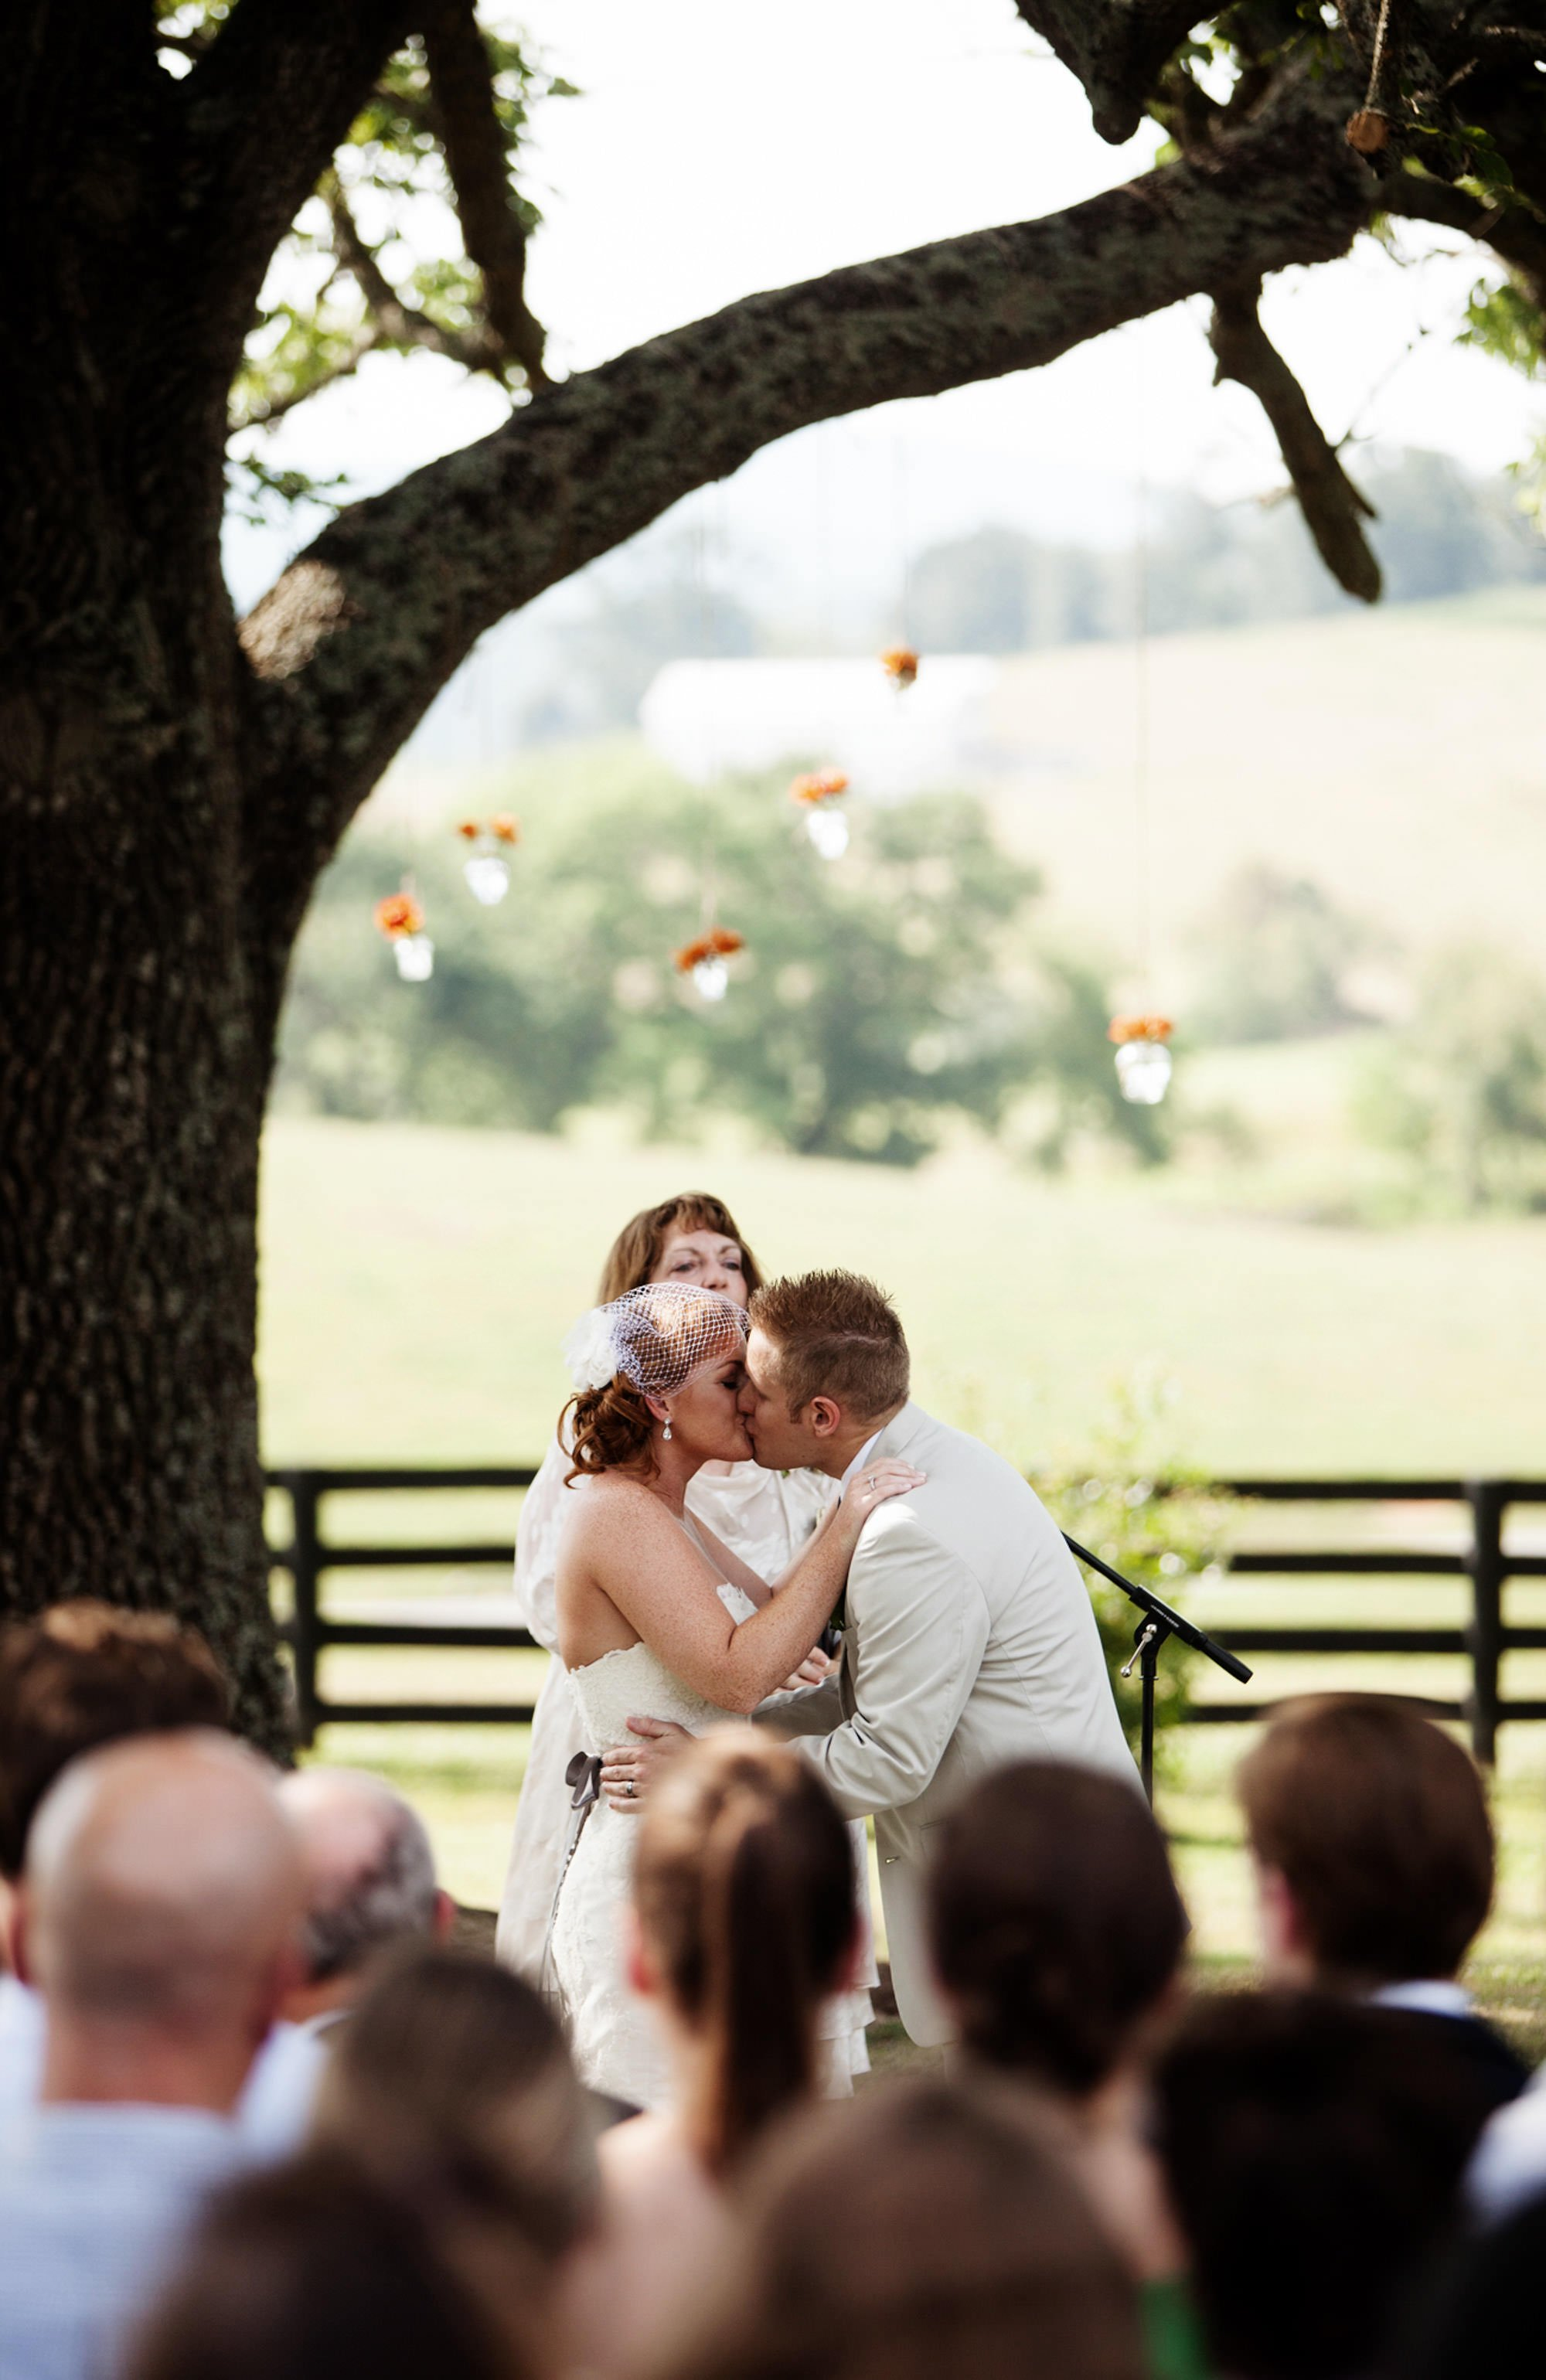 The bride and groom share their first kiss under a tree during their Marriott Ranch wedding.